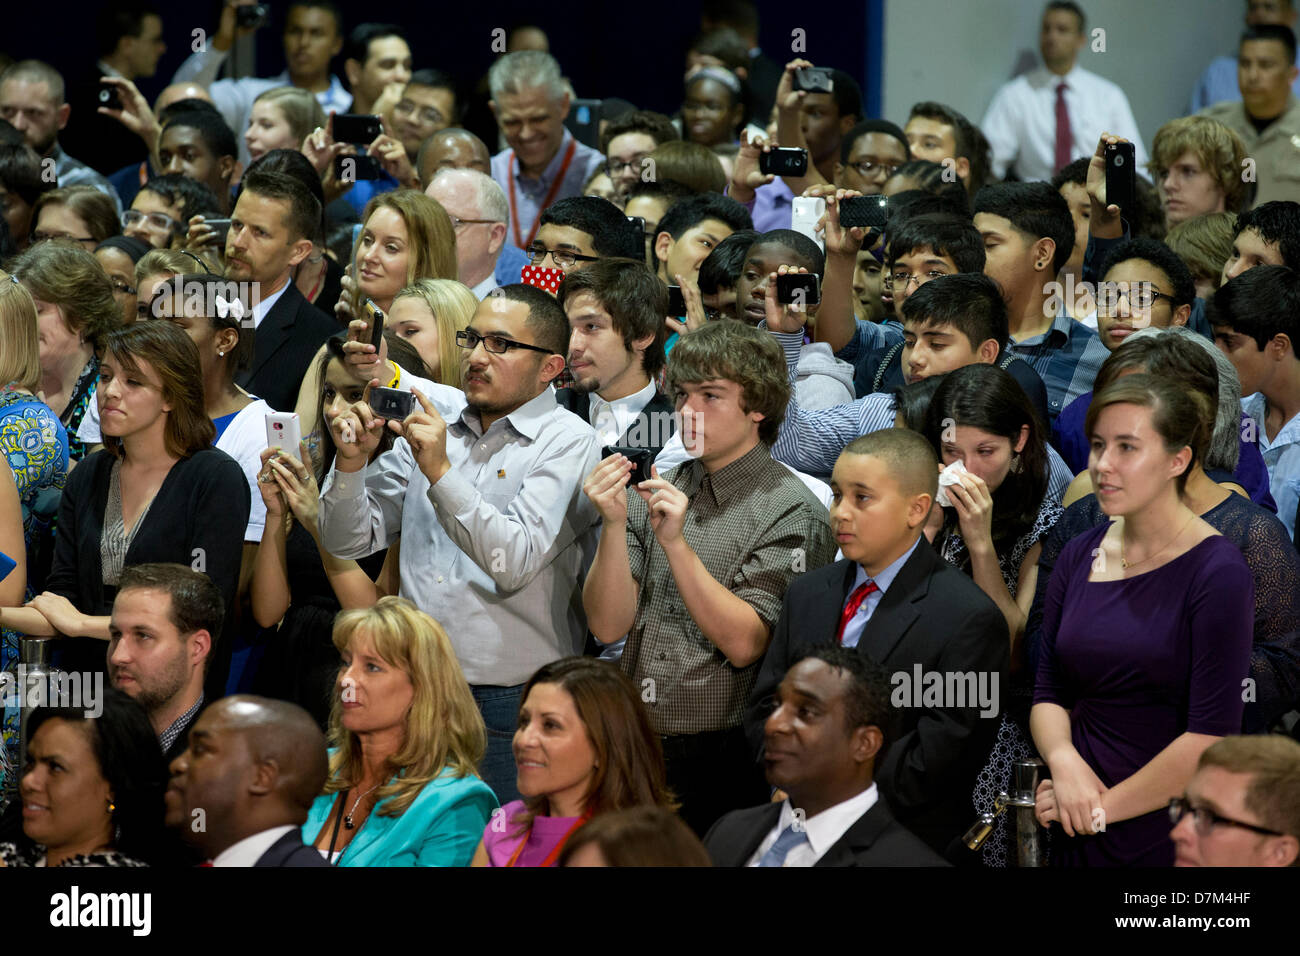 Audience members listen as U.S. President Barack Obama speaks at Manor New Technology High School in Manor, Texas - Stock Image